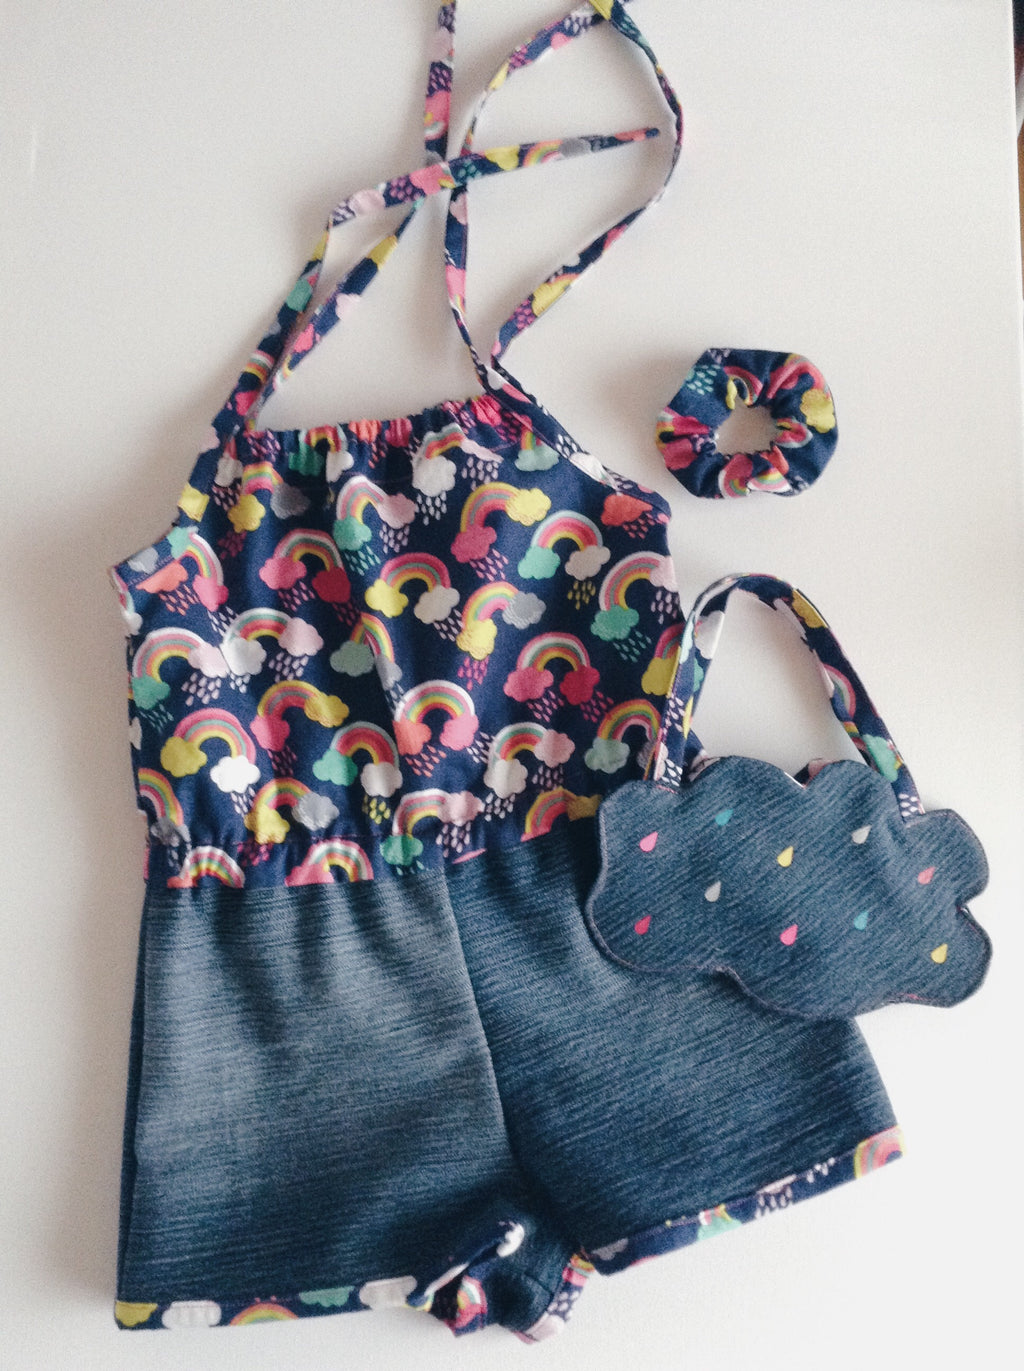 The rainbow Ruby Wild Romper size 2 with matching purse